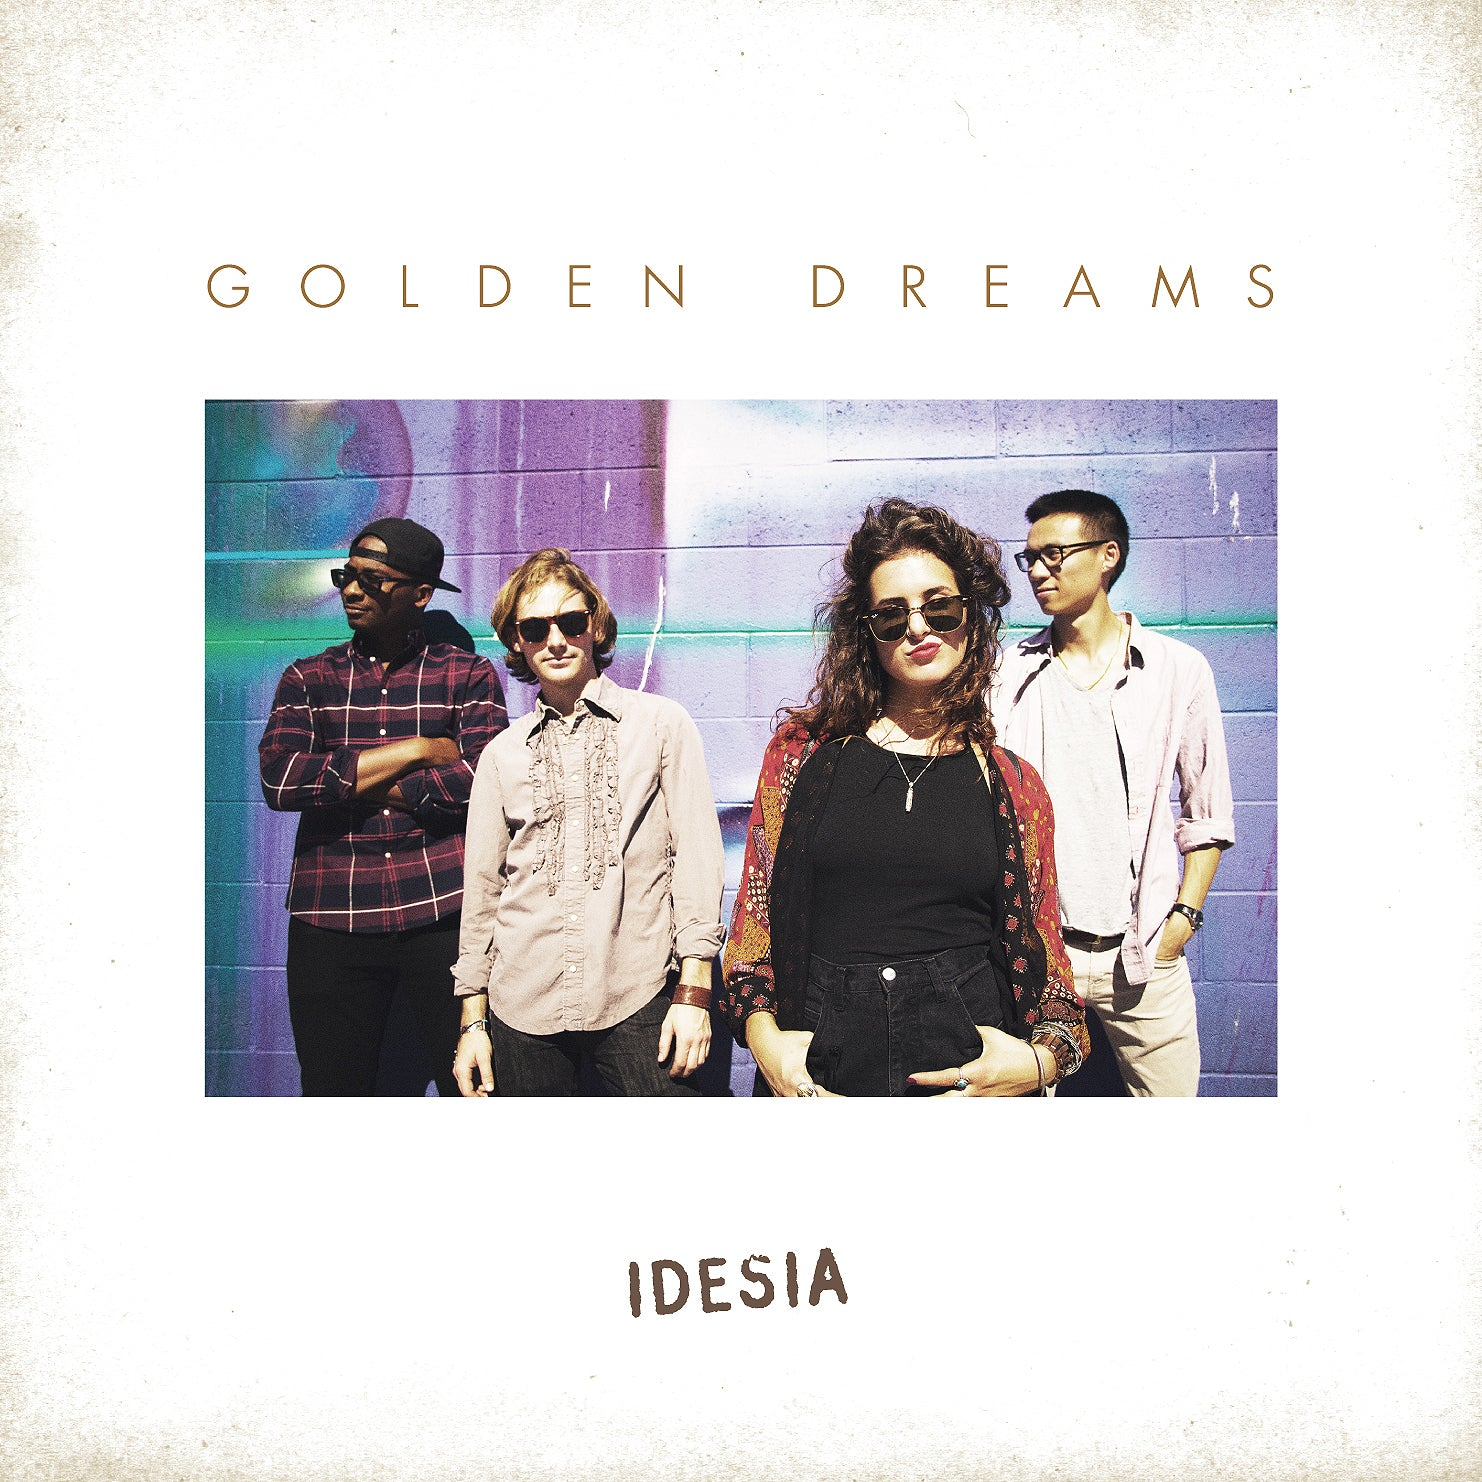 idesia / Golden Dreams